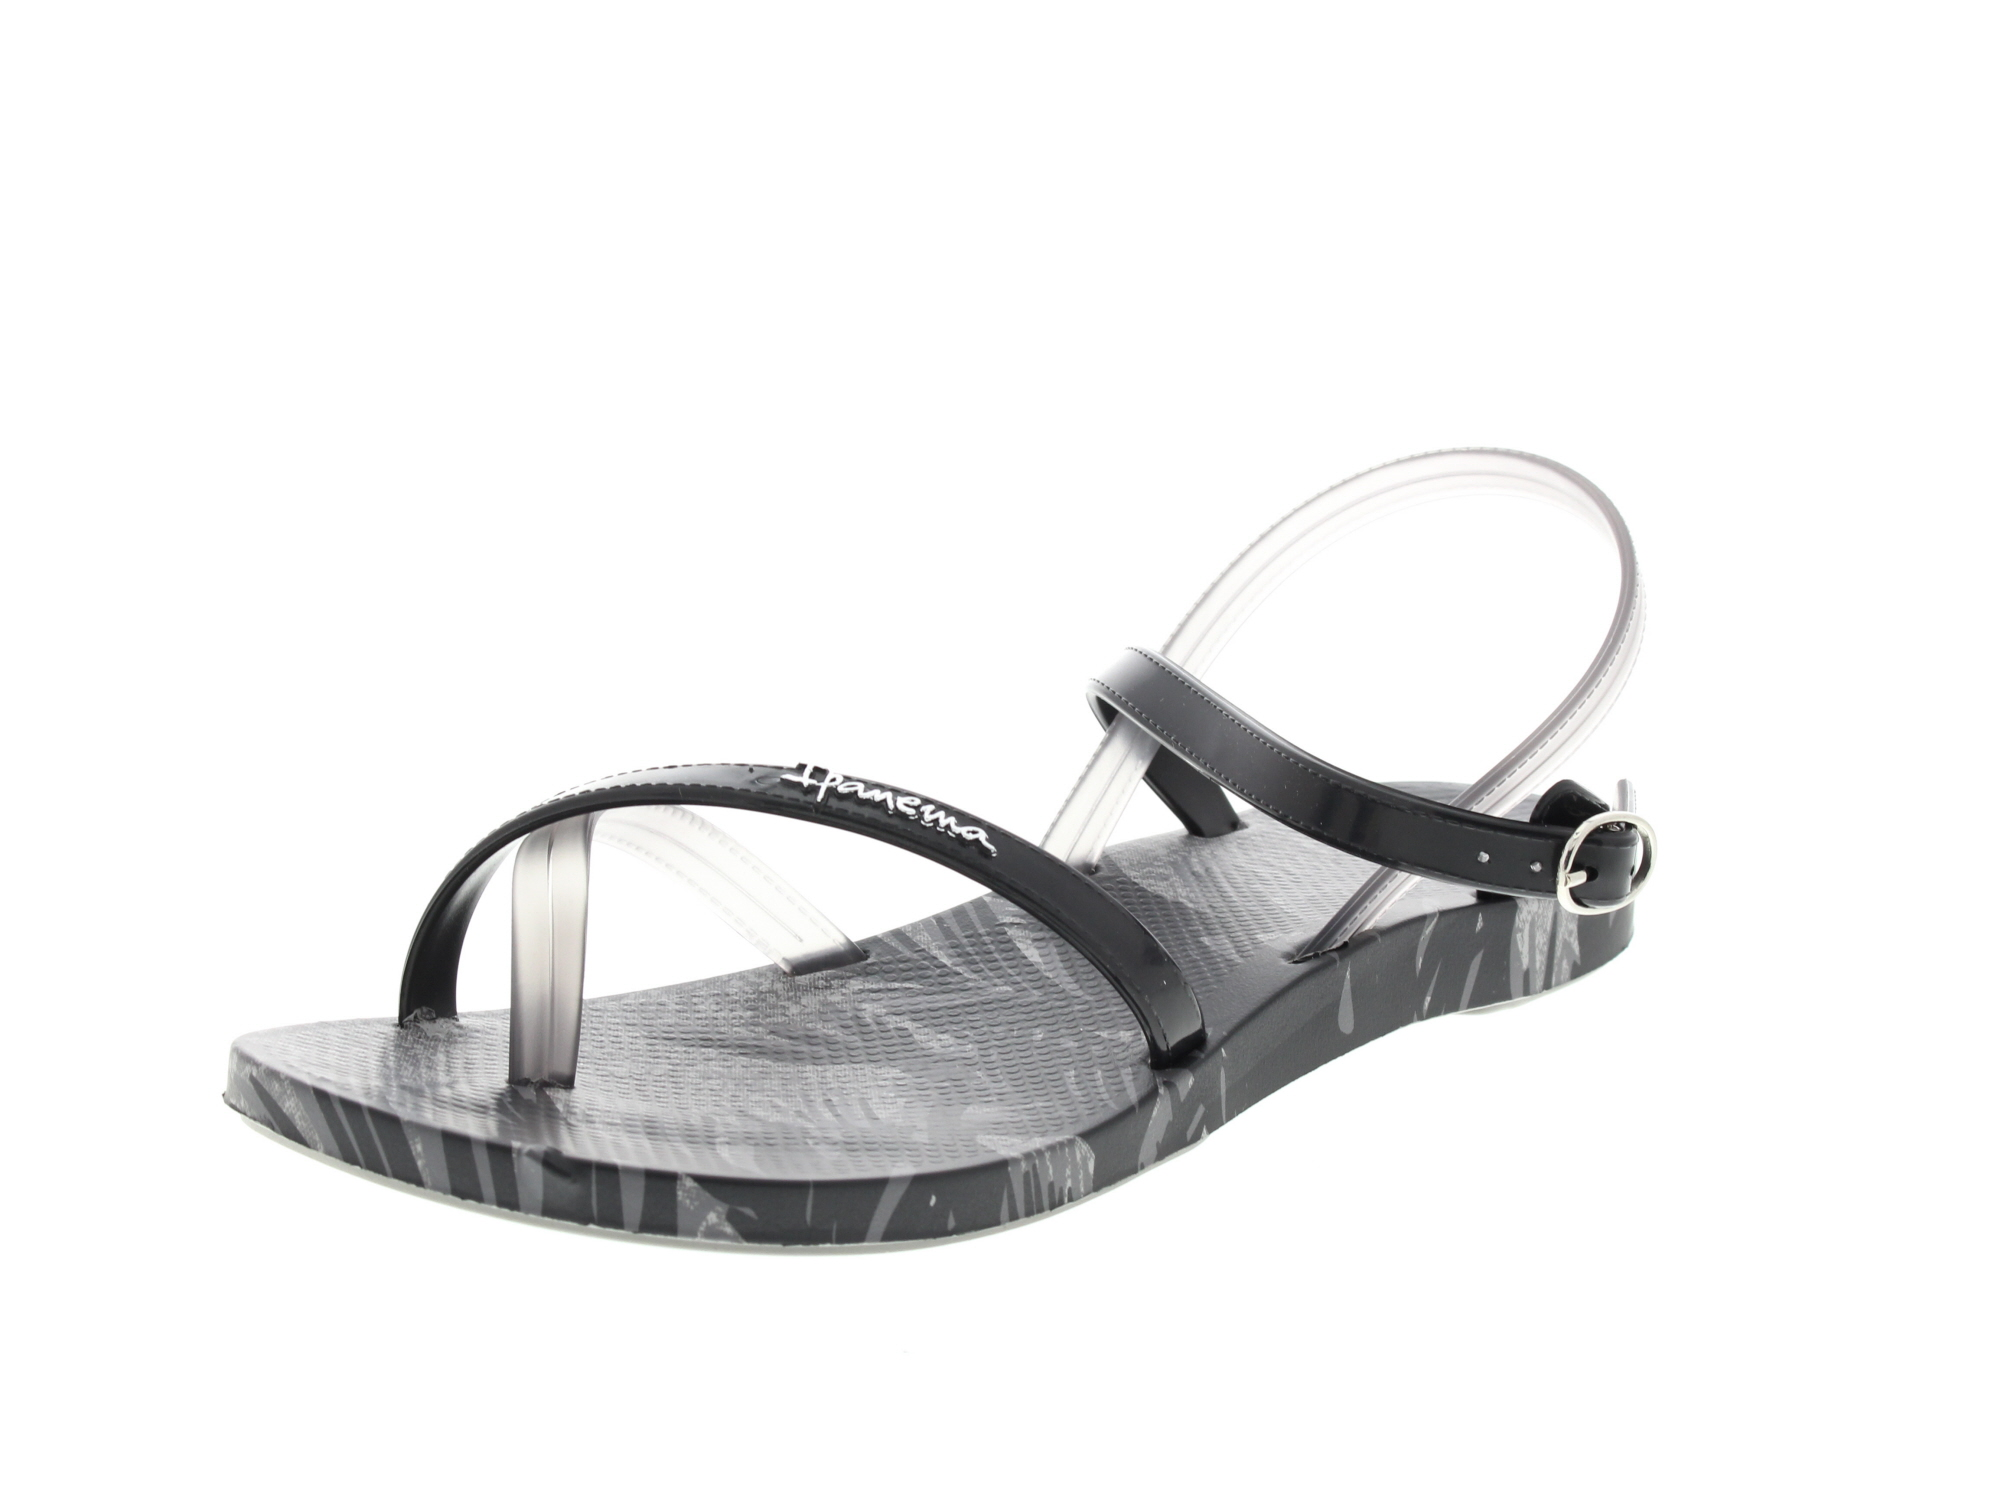 IPANEMA reduziert FASHION SANDAL IV 81929 - grey black0